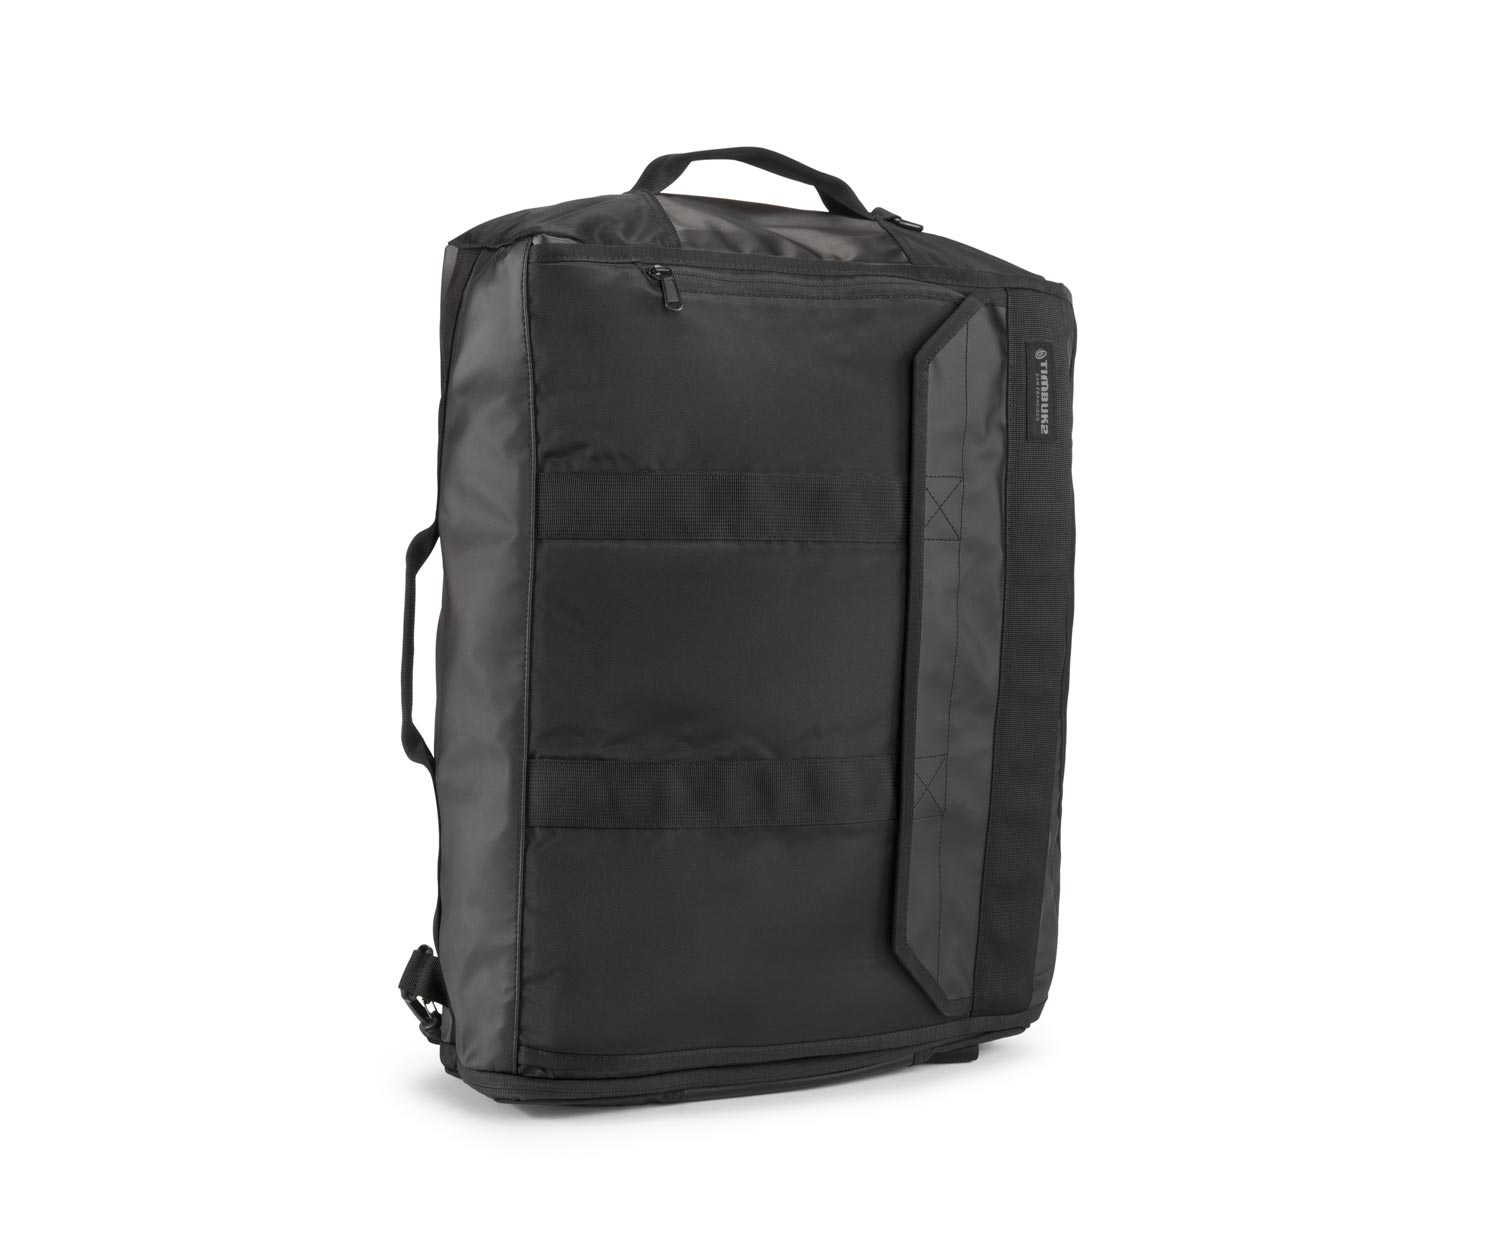 Wingman Carry-on | Travel Bag | Timbuk2